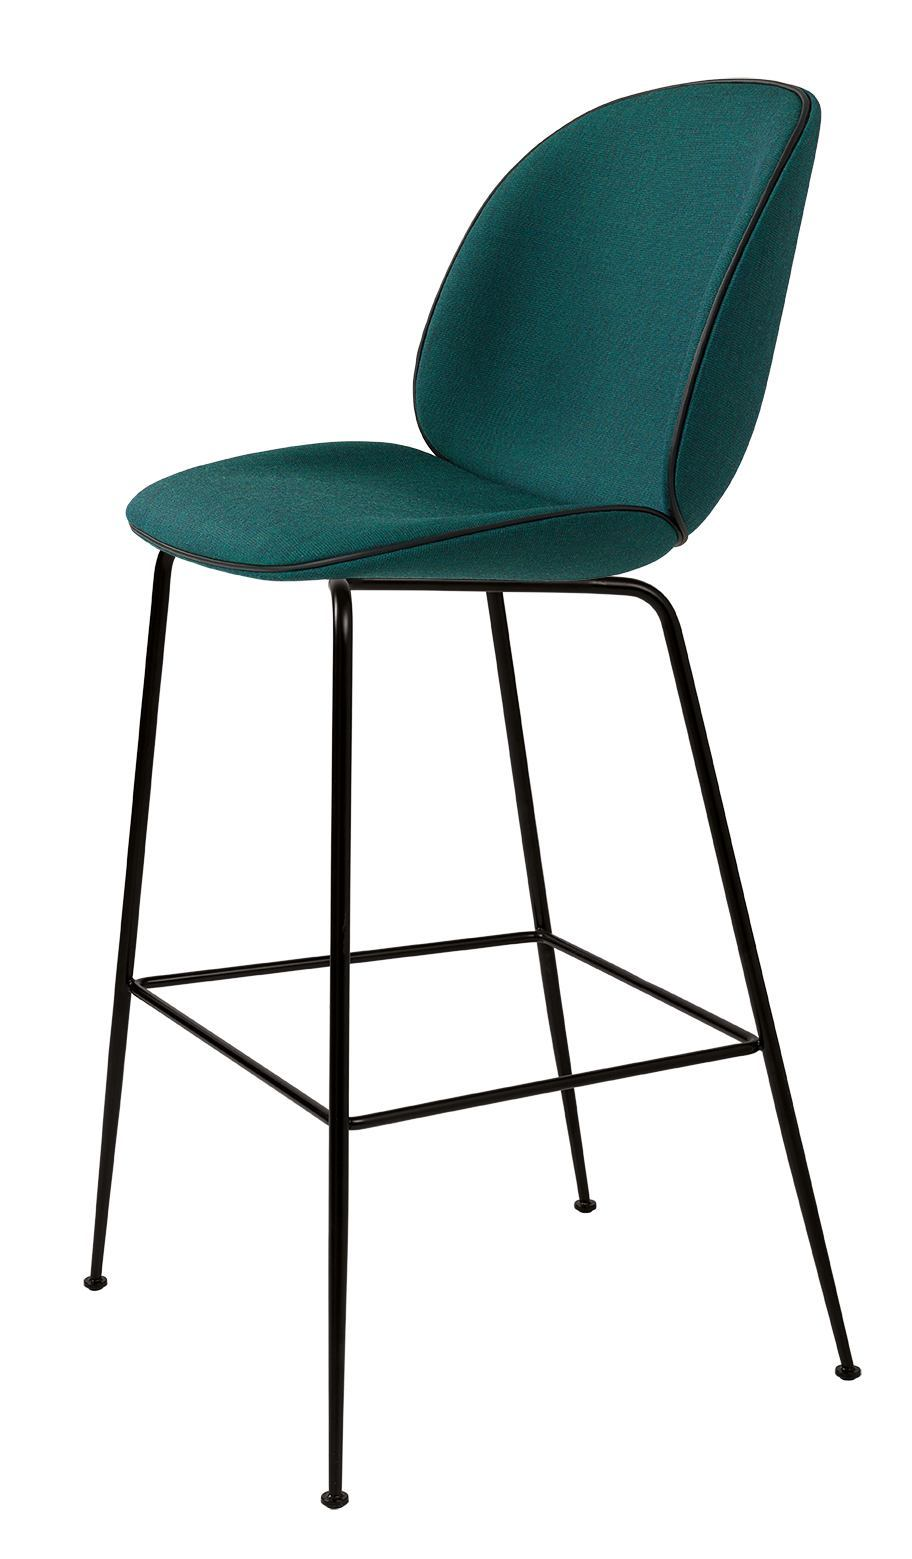 GUBI BEETLE STOOL - Eclectic Cool  - 7